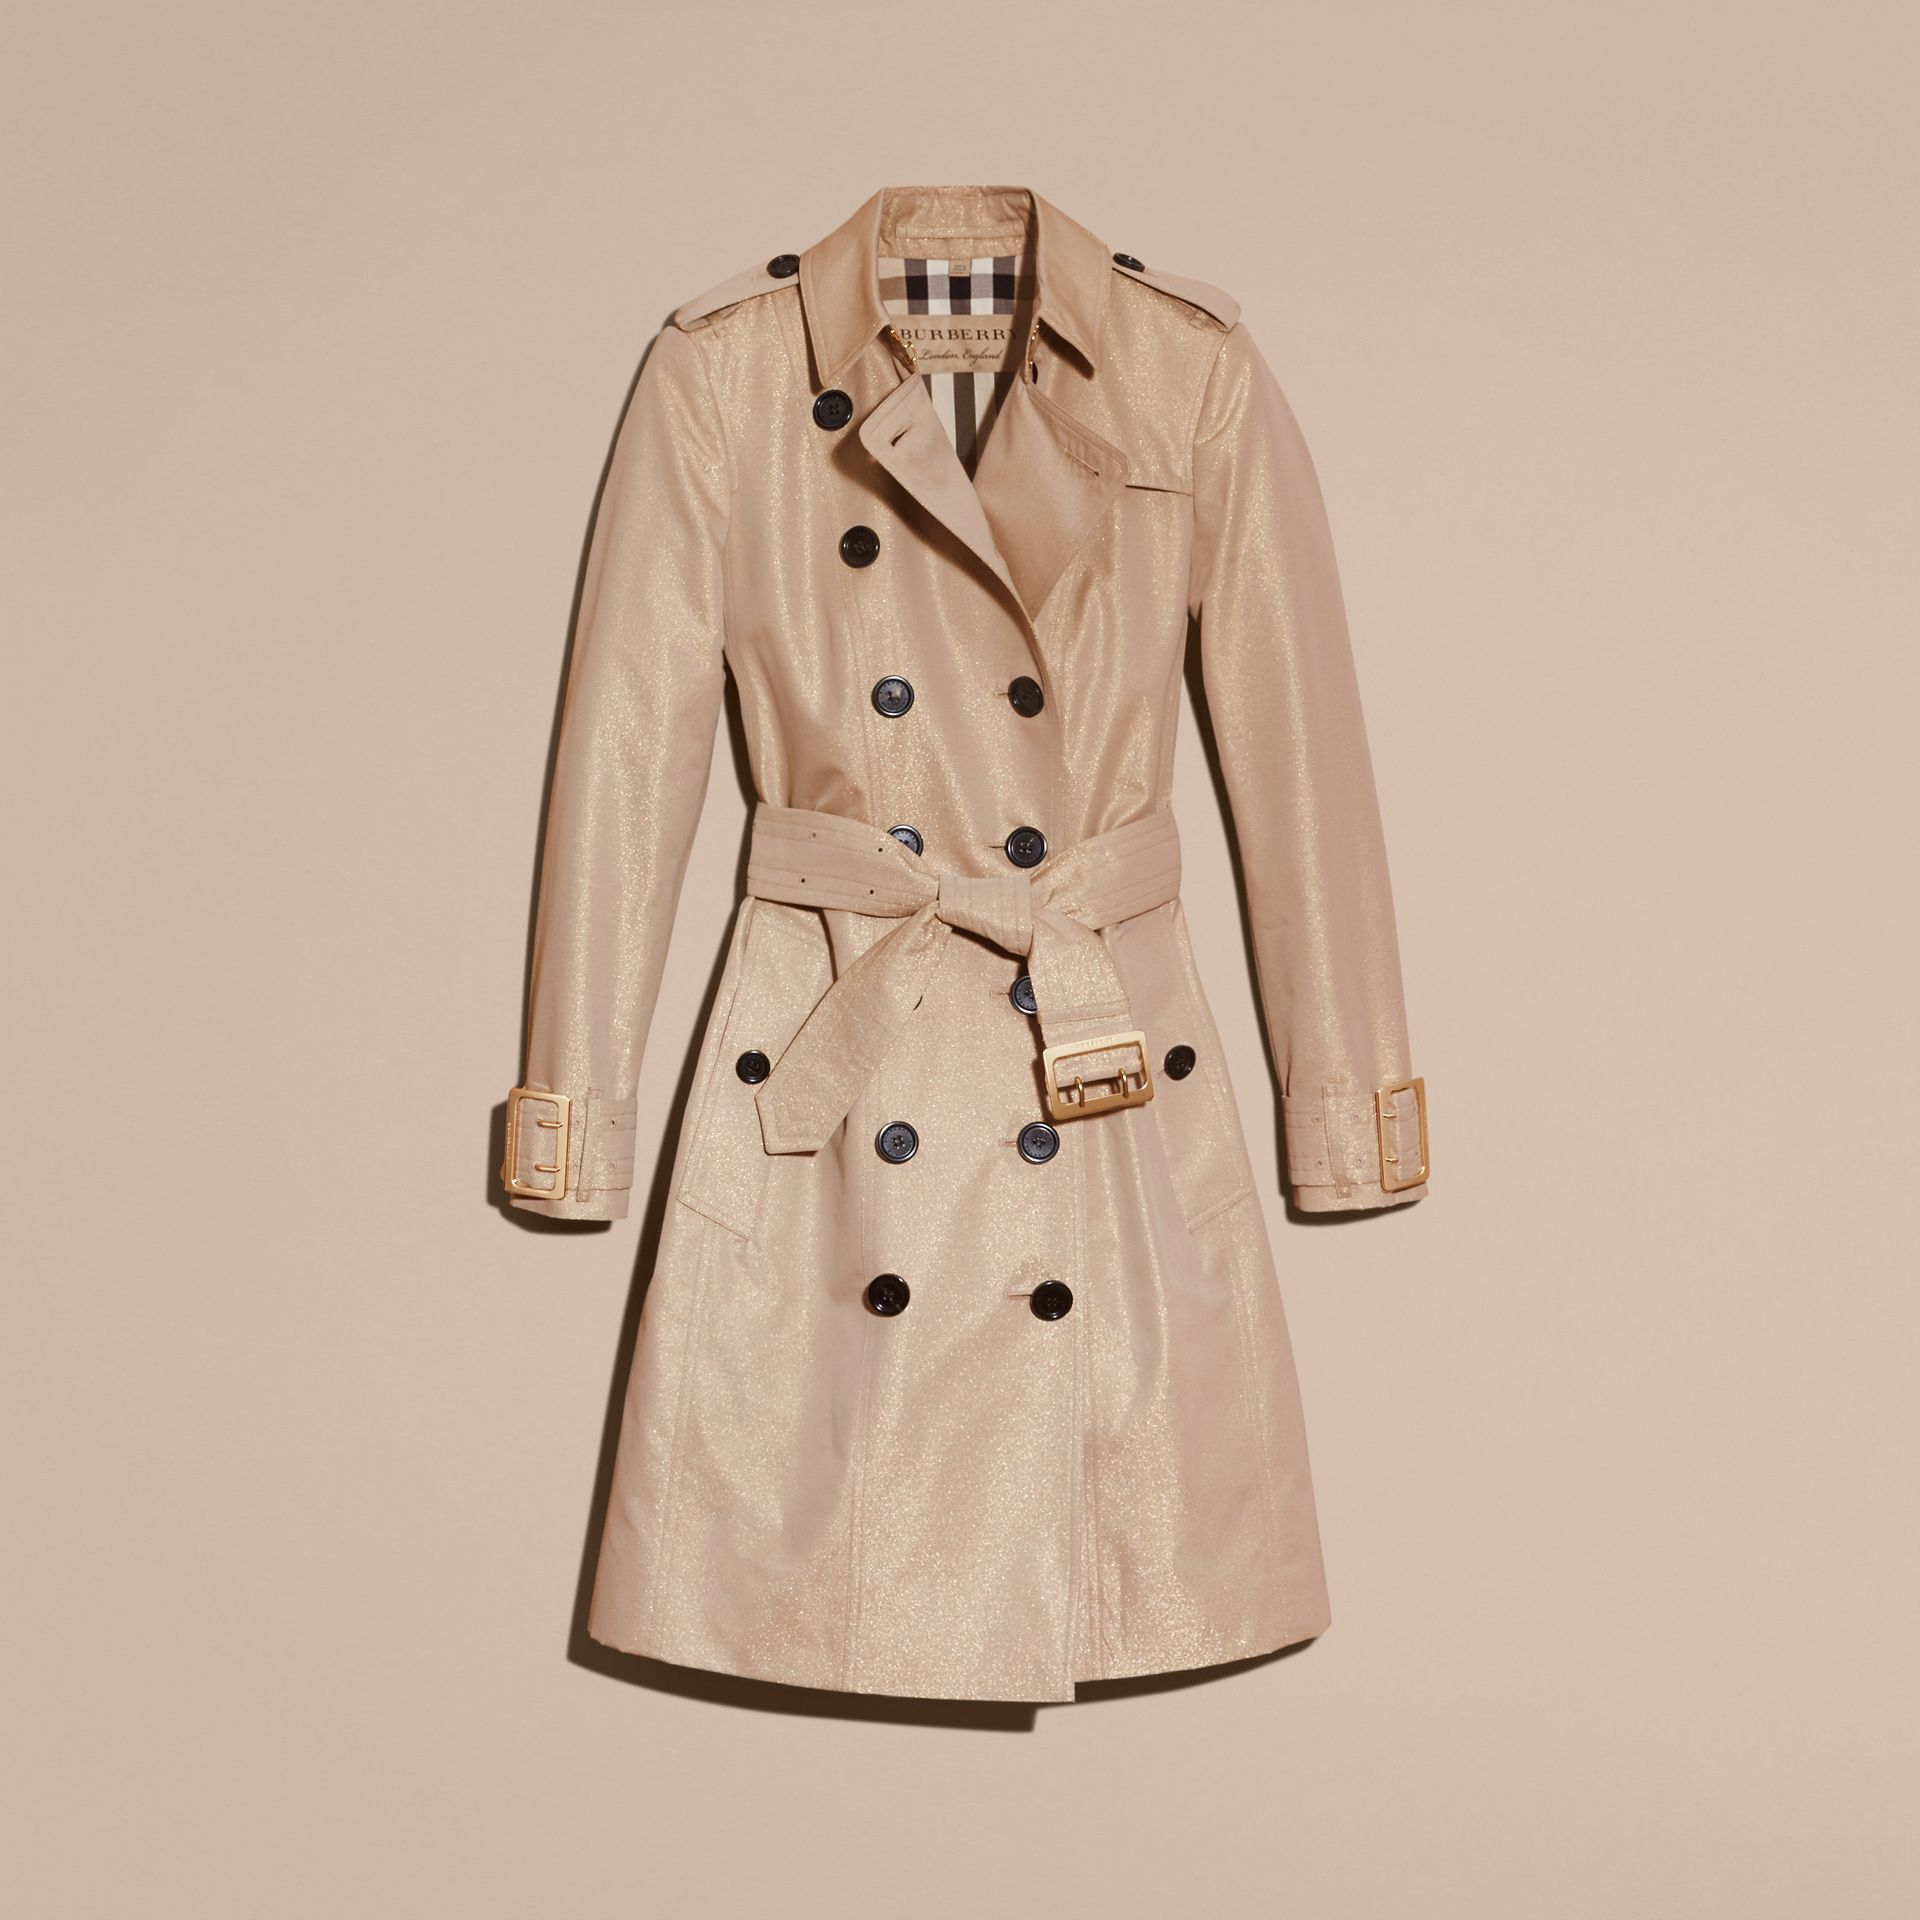 Nude gold Metallic Cotton Gabardine Trench Coat with Oversize Buckle Detail - gallery image 4